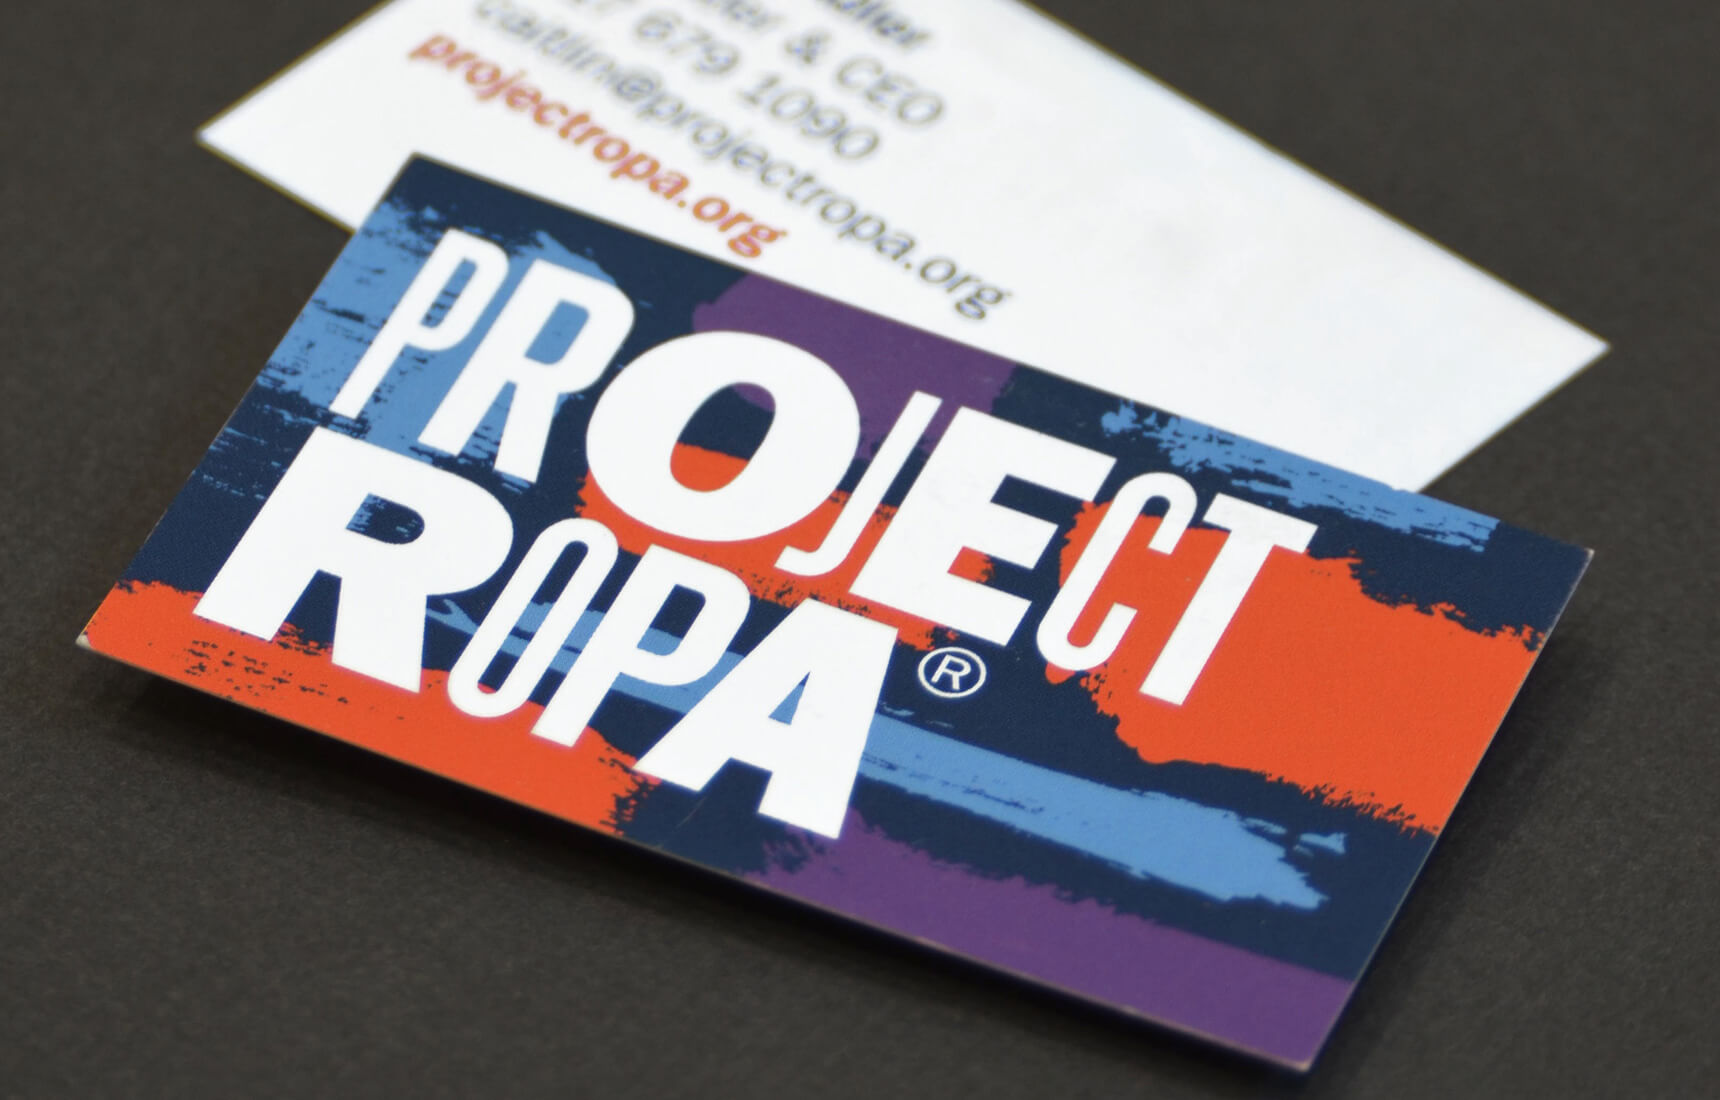 Colorful business Card design for Project Ropa.